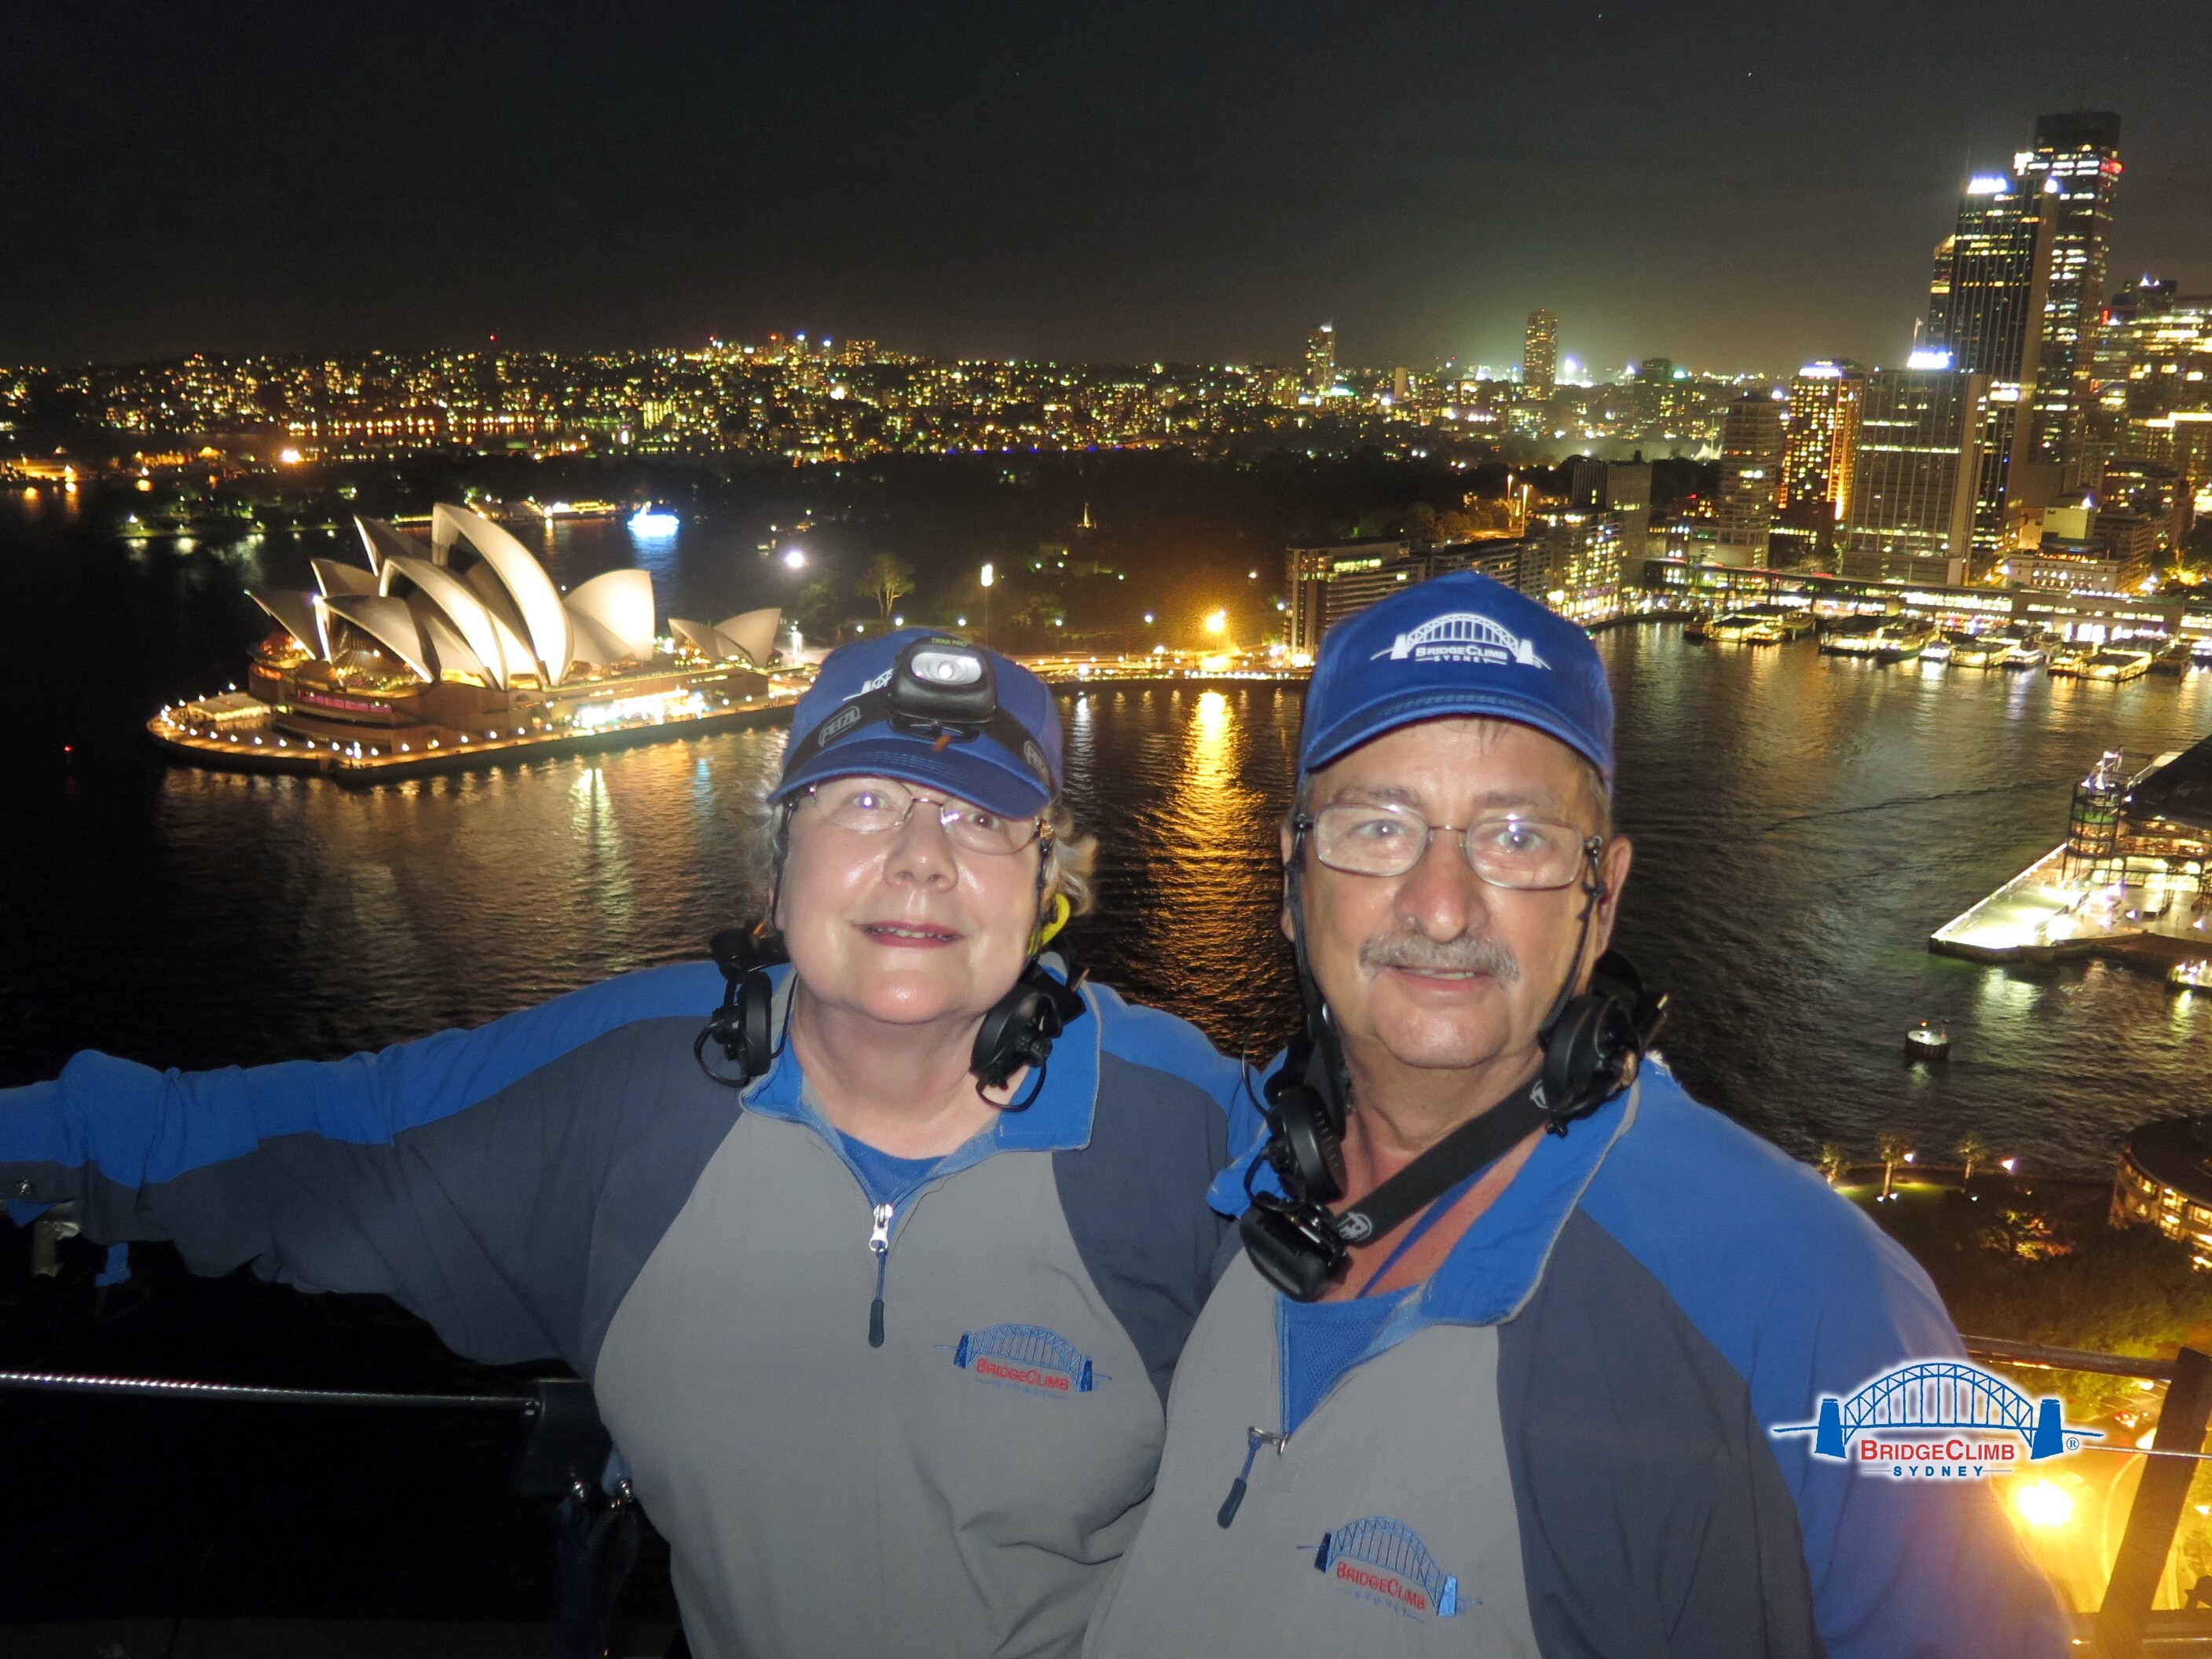 On Top of the Sydney Harbour Bridge